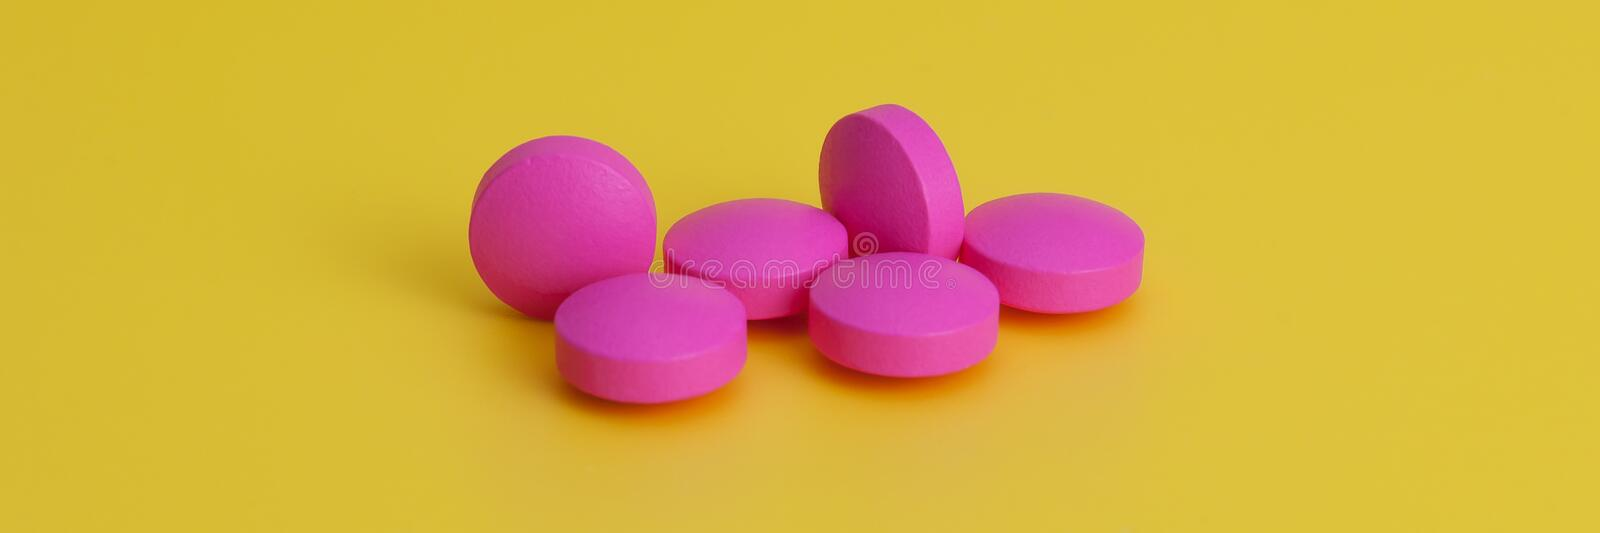 Several large bright pink tablets on a yellow background. In the center of the image. stock photos